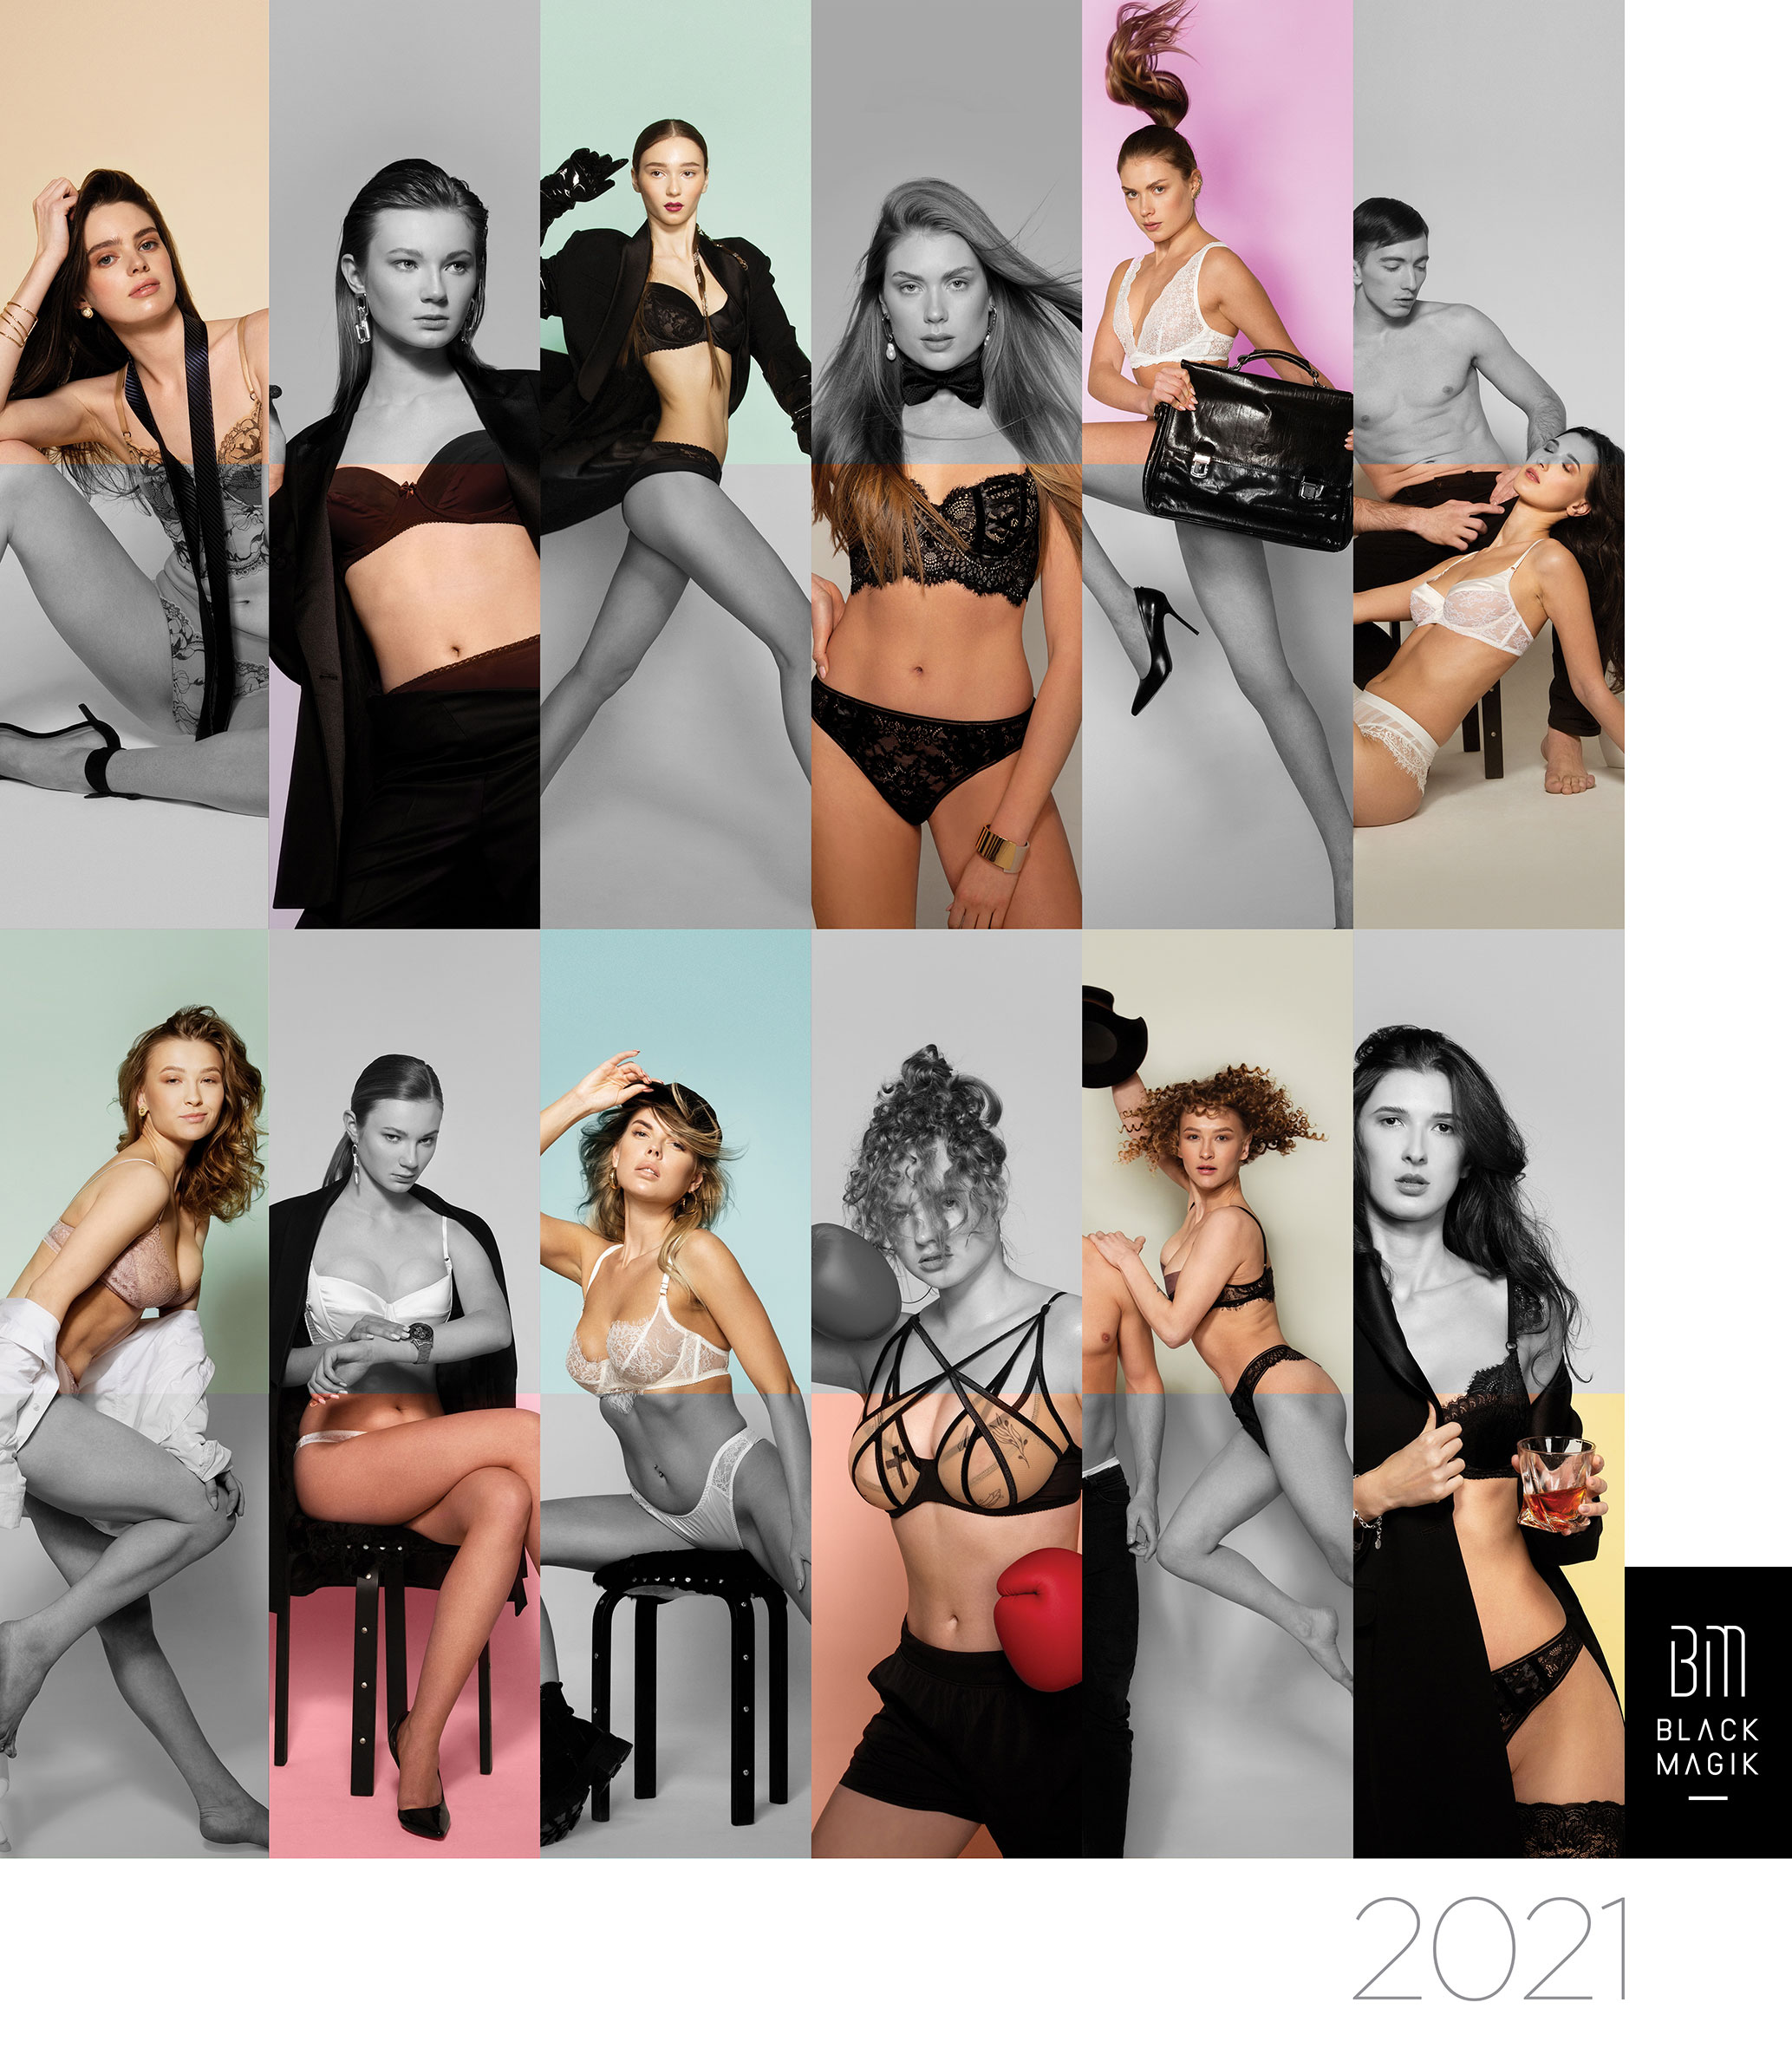 India Intimate Fashion Week's 3rd Edition of its Super Glamorous Fashion Calendar BLACK MAGIK